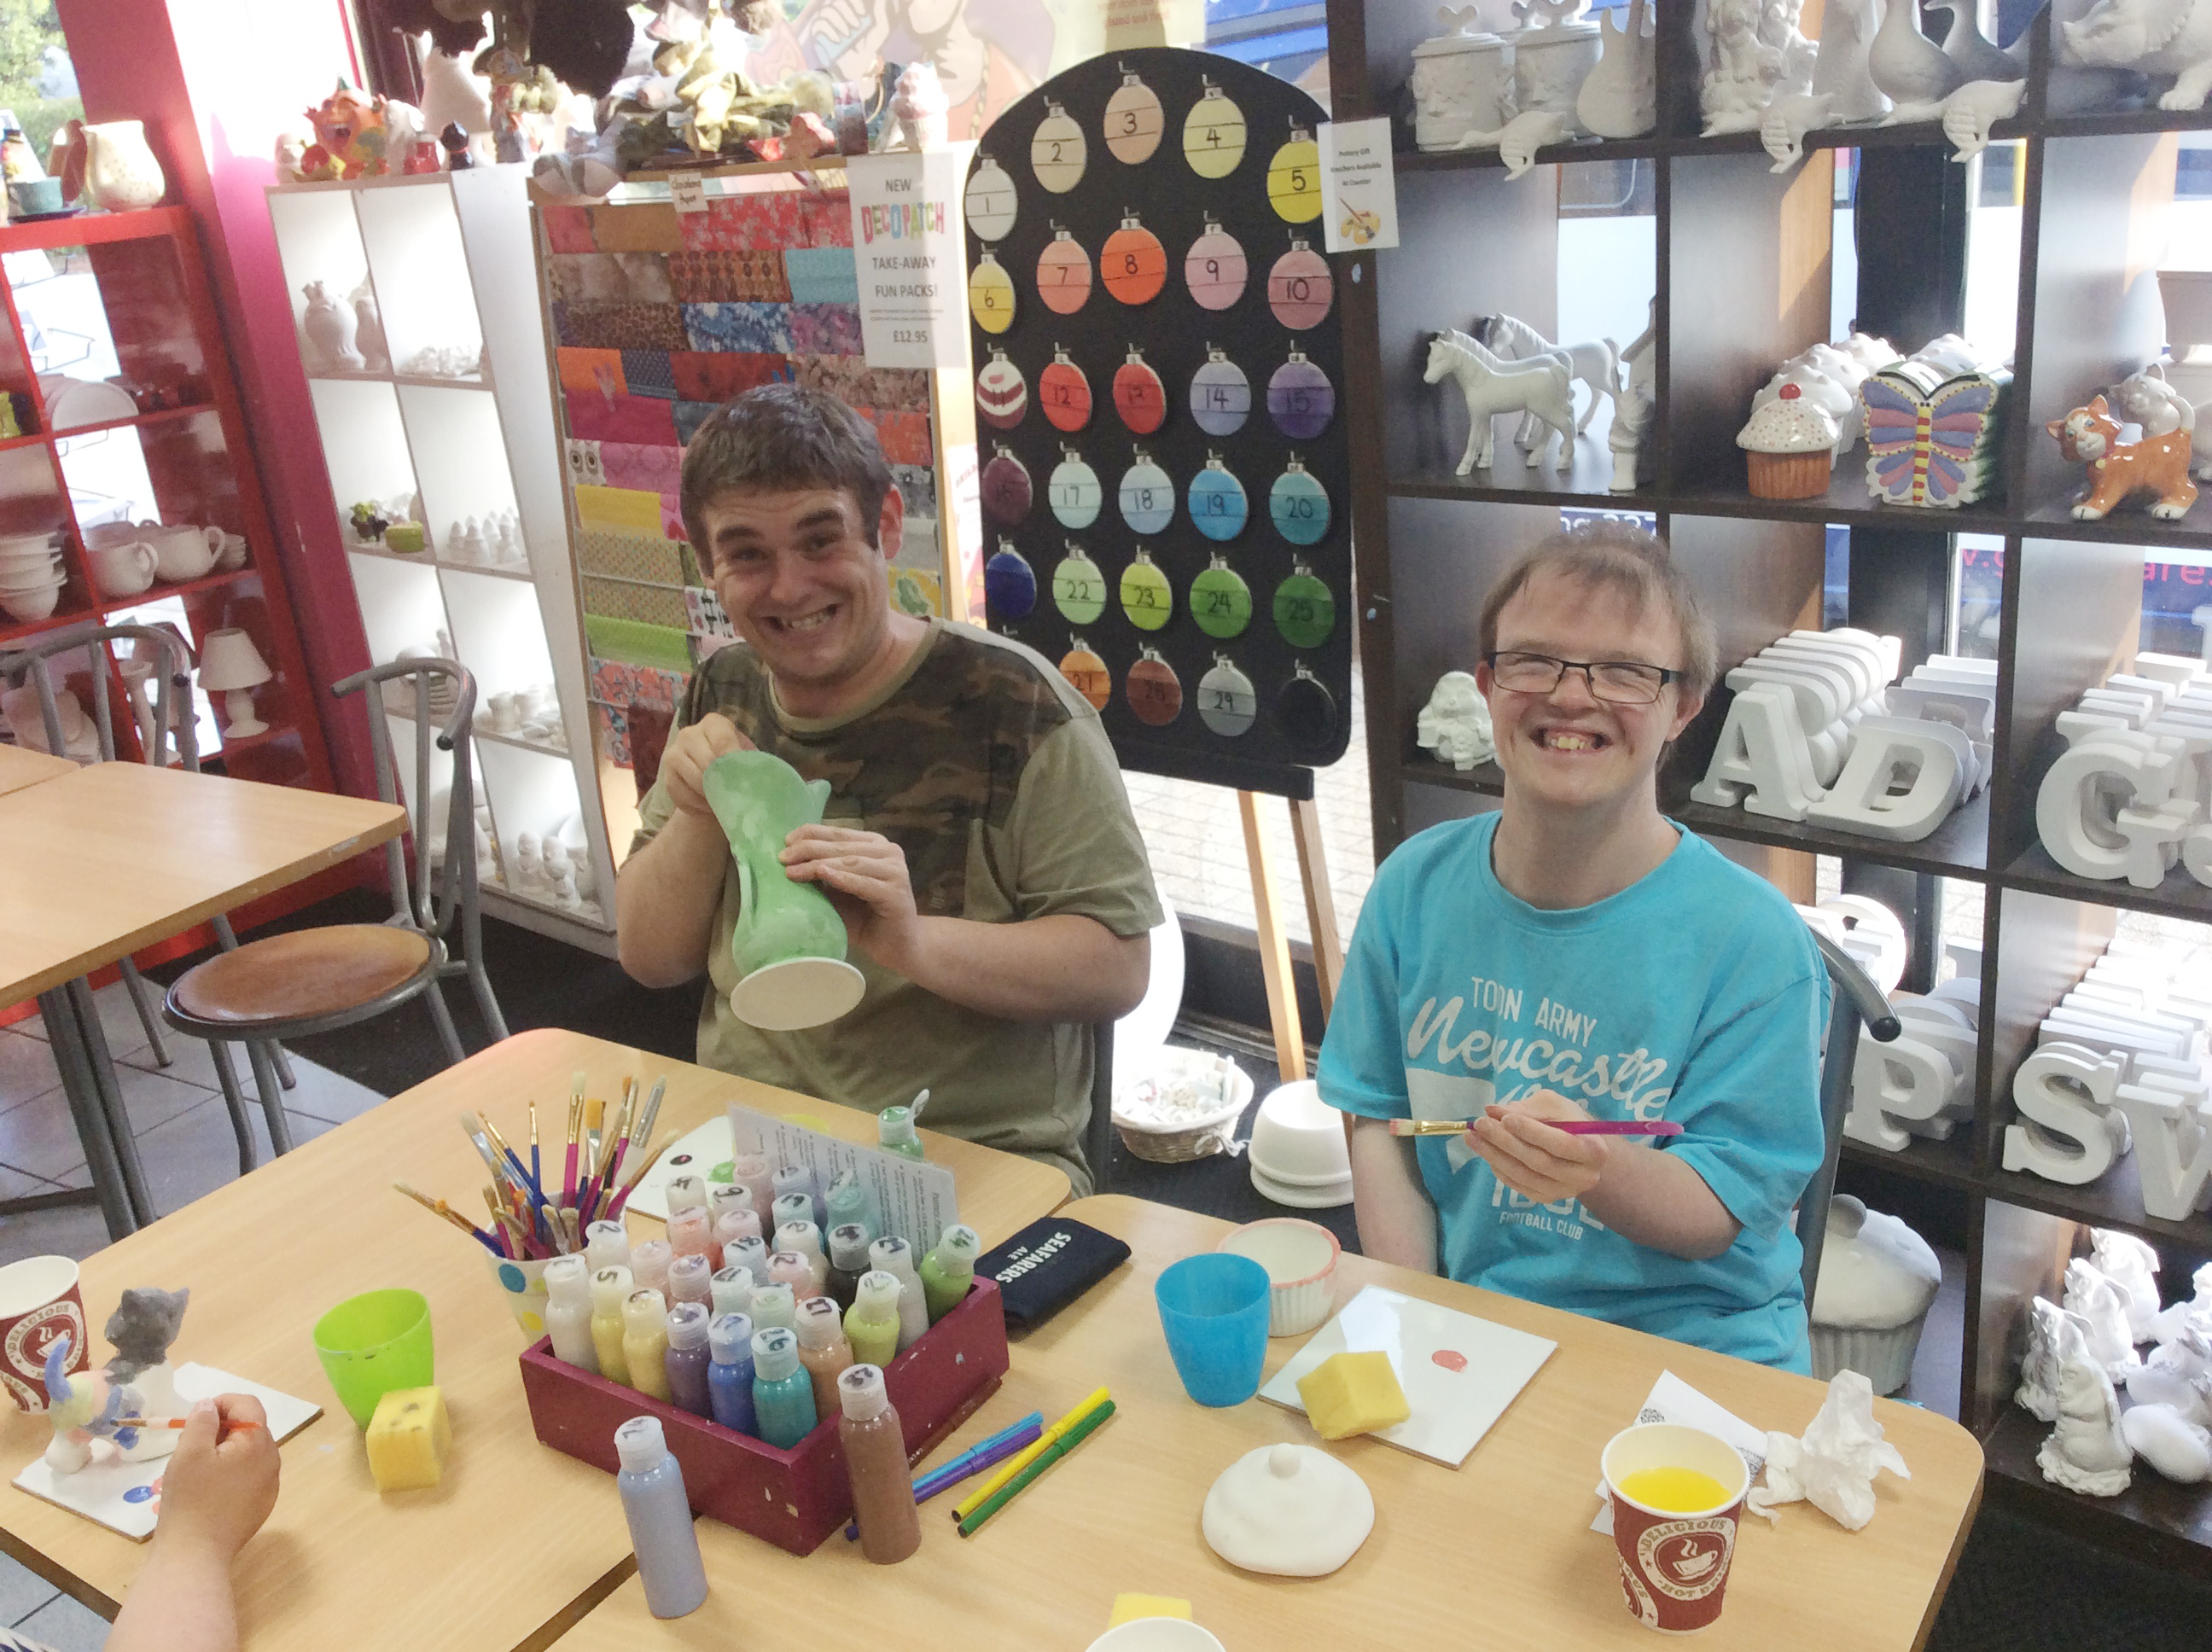 Ashdown Extra club for 18 to 30 with a disability or additional needs. Two young men painting pottery.